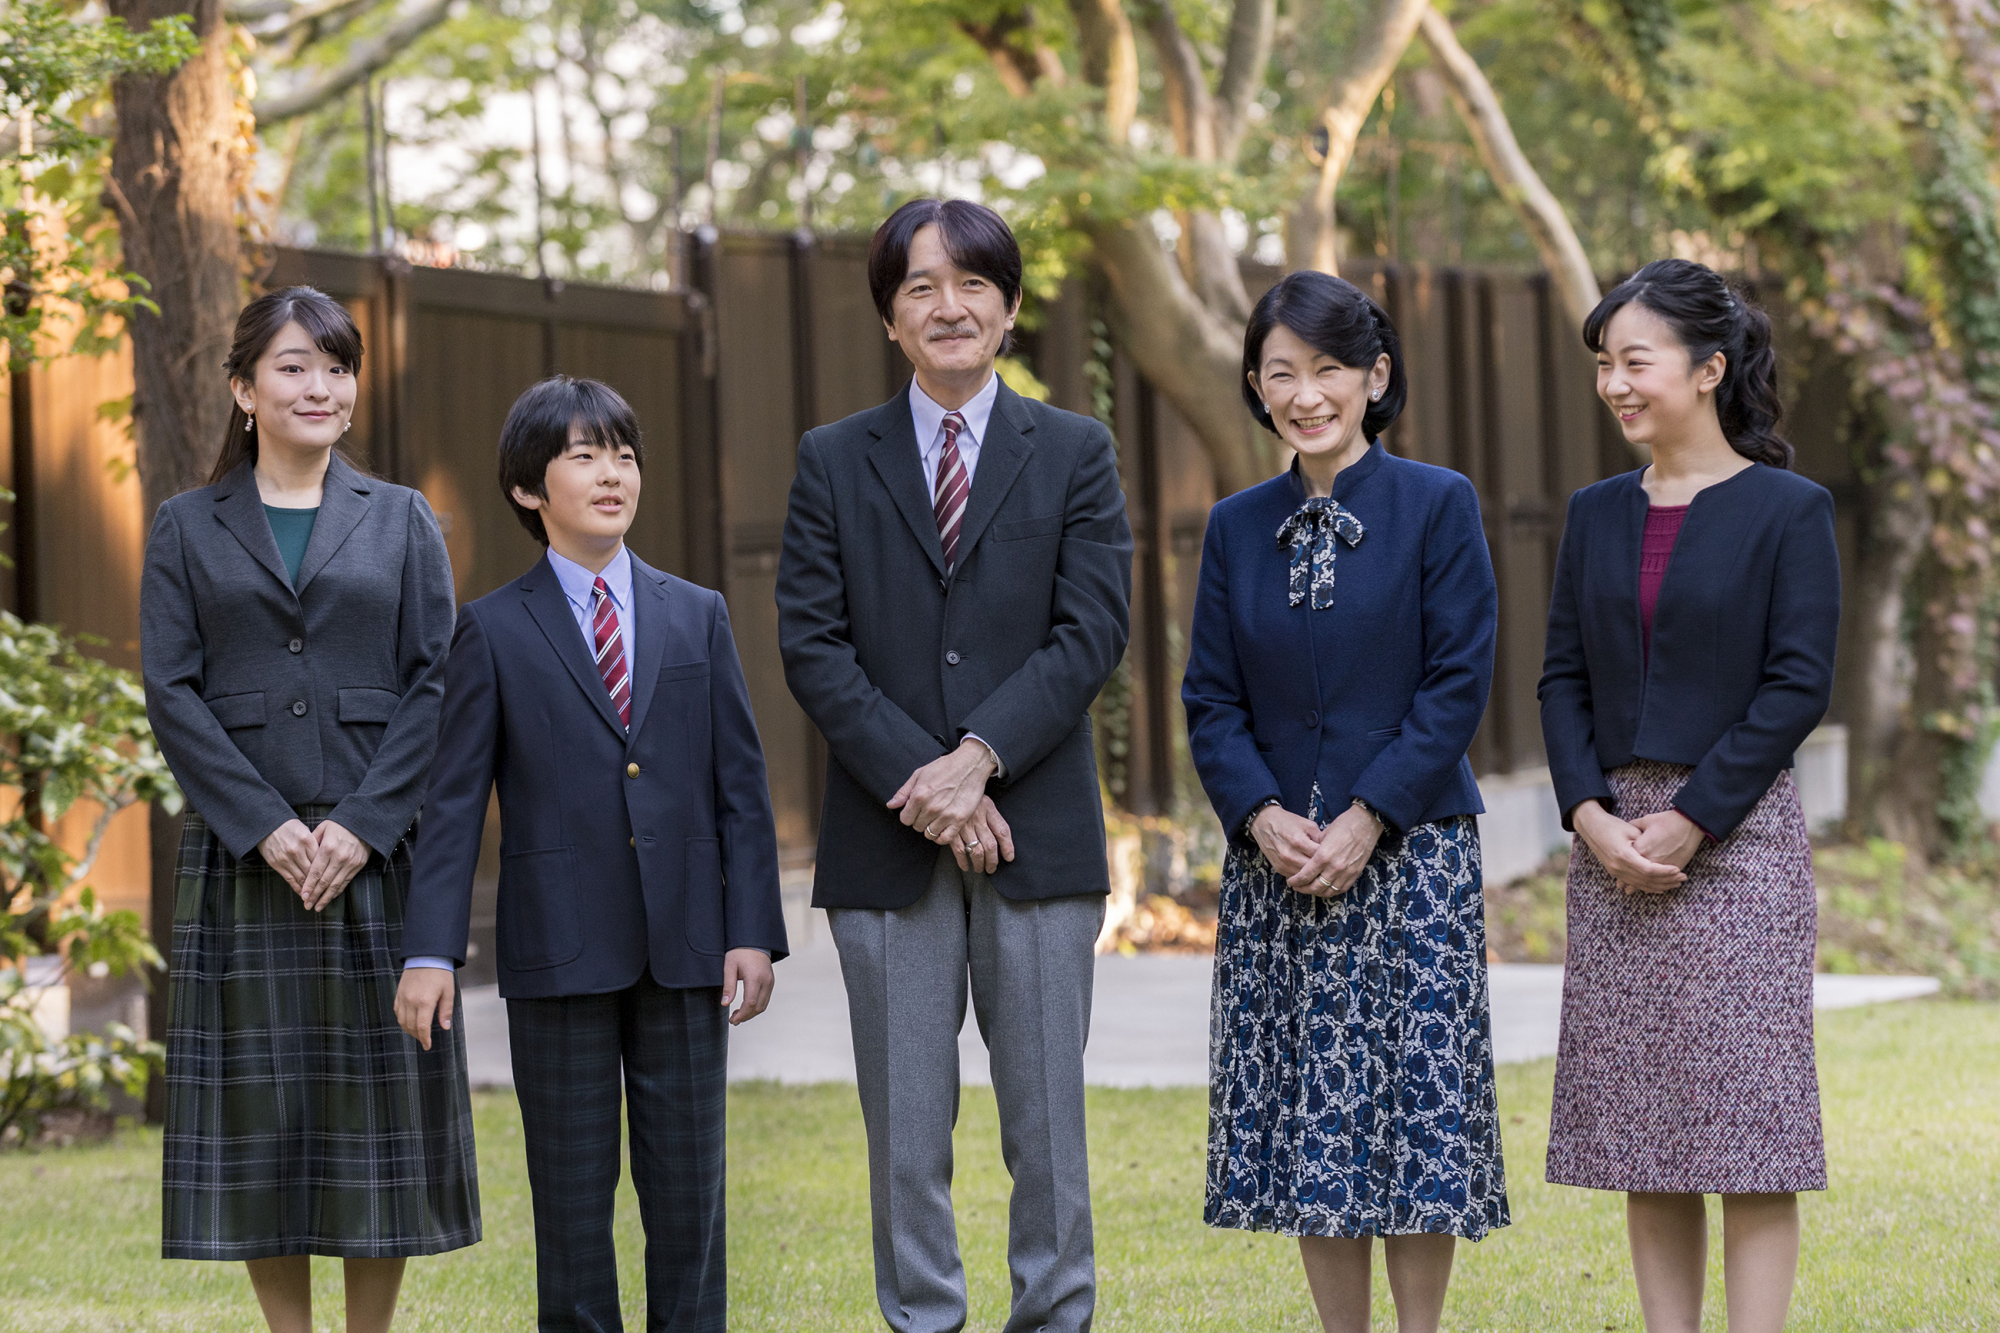 Crown Prince Akishino poses with his wife, Crown Princess Kiko, and their children, Princess Mako (left), Princess Kako (right) and Prince Hisahito at their residence in Tokyo on Nov. 15. | IMPERIAL HOUSEHOLD AGENCY / VIA AP